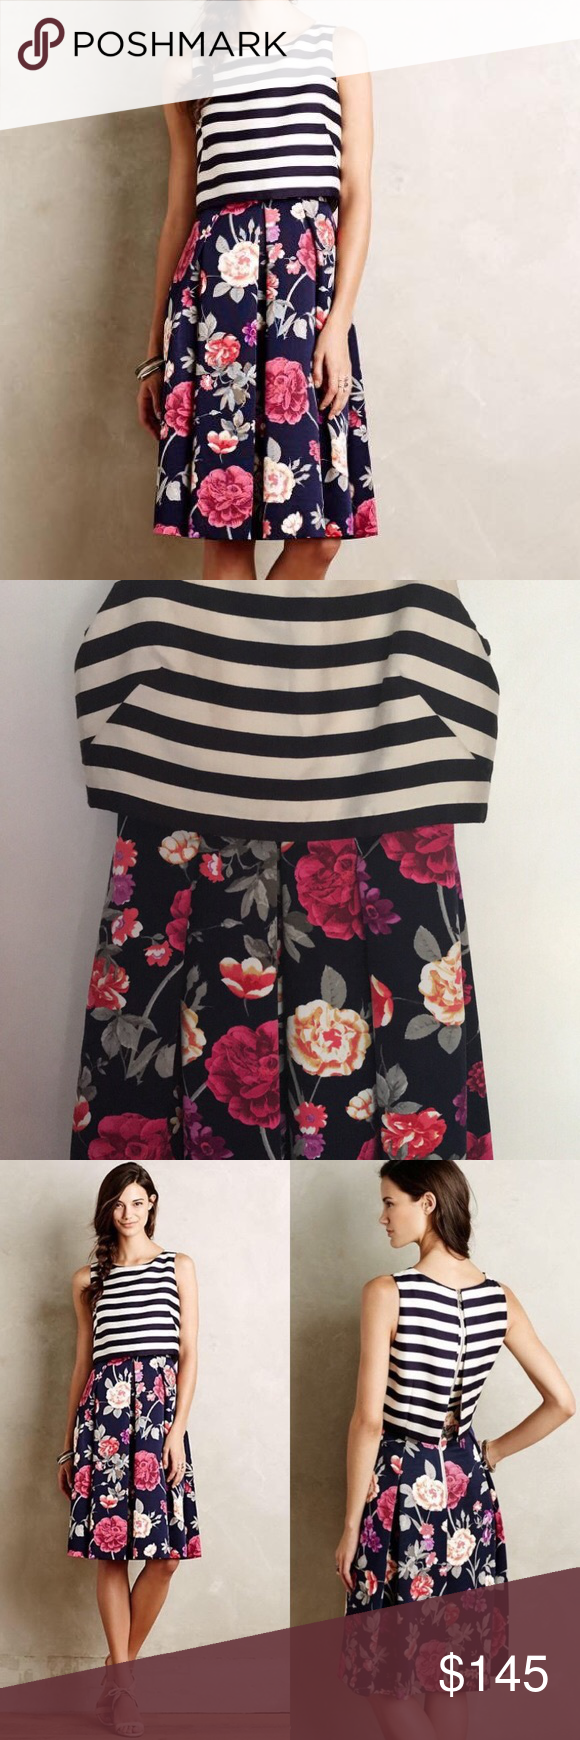 "f7d1ba318ece Moulinette Soeurs split print dress Excellent condition. Bust 17"", Waist  13.5"" Anthropologie Dresses"